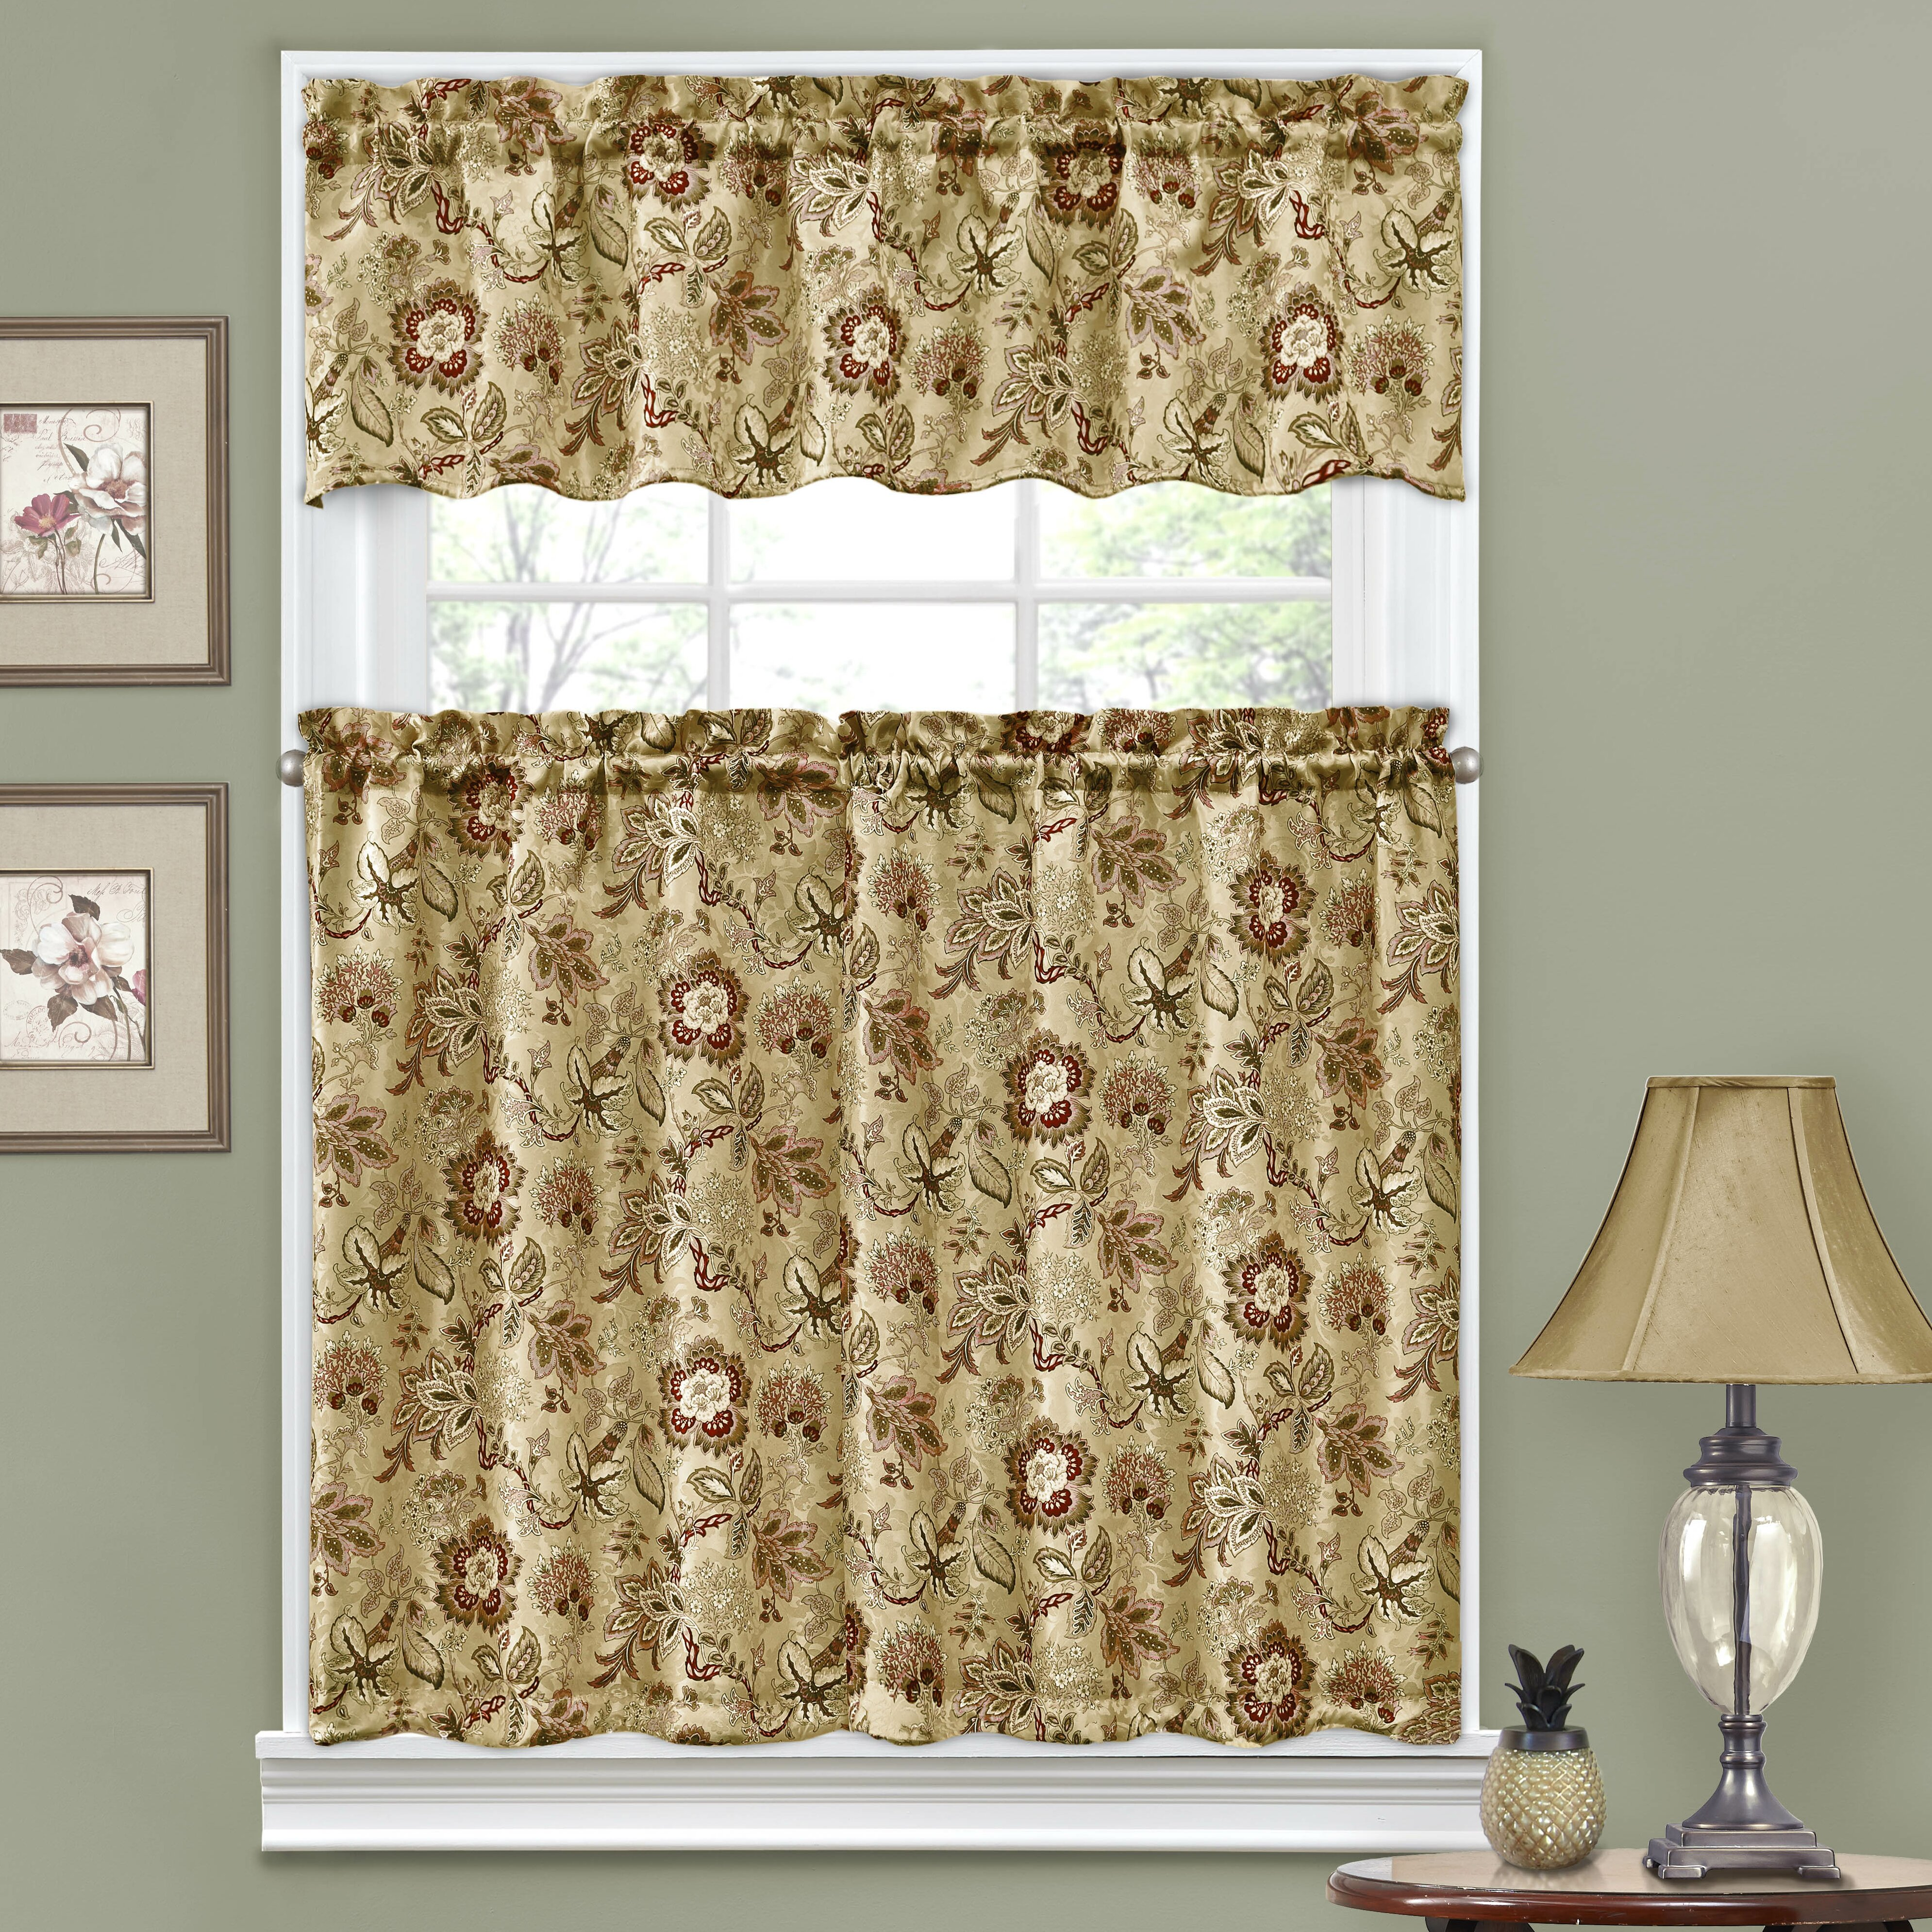 "Traditions By Waverly Navarra Floral 52"" Valance And Tier Set & Reviews"